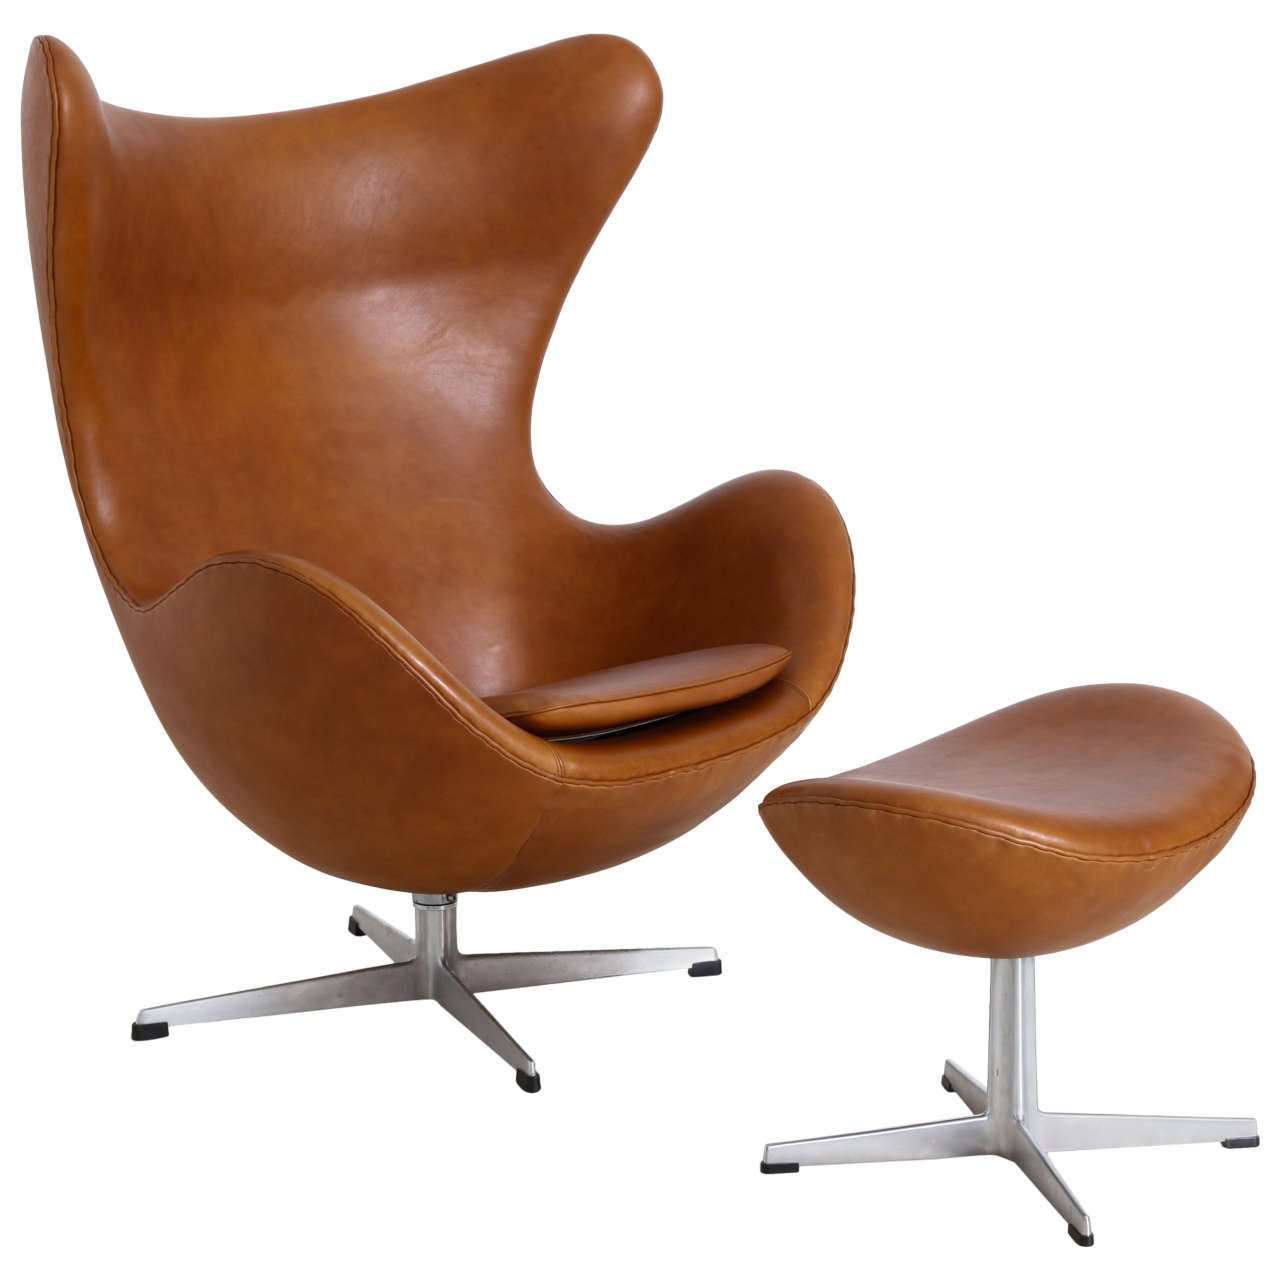 arne jacobsen egg chair with ottoman at 1stdibs. Black Bedroom Furniture Sets. Home Design Ideas